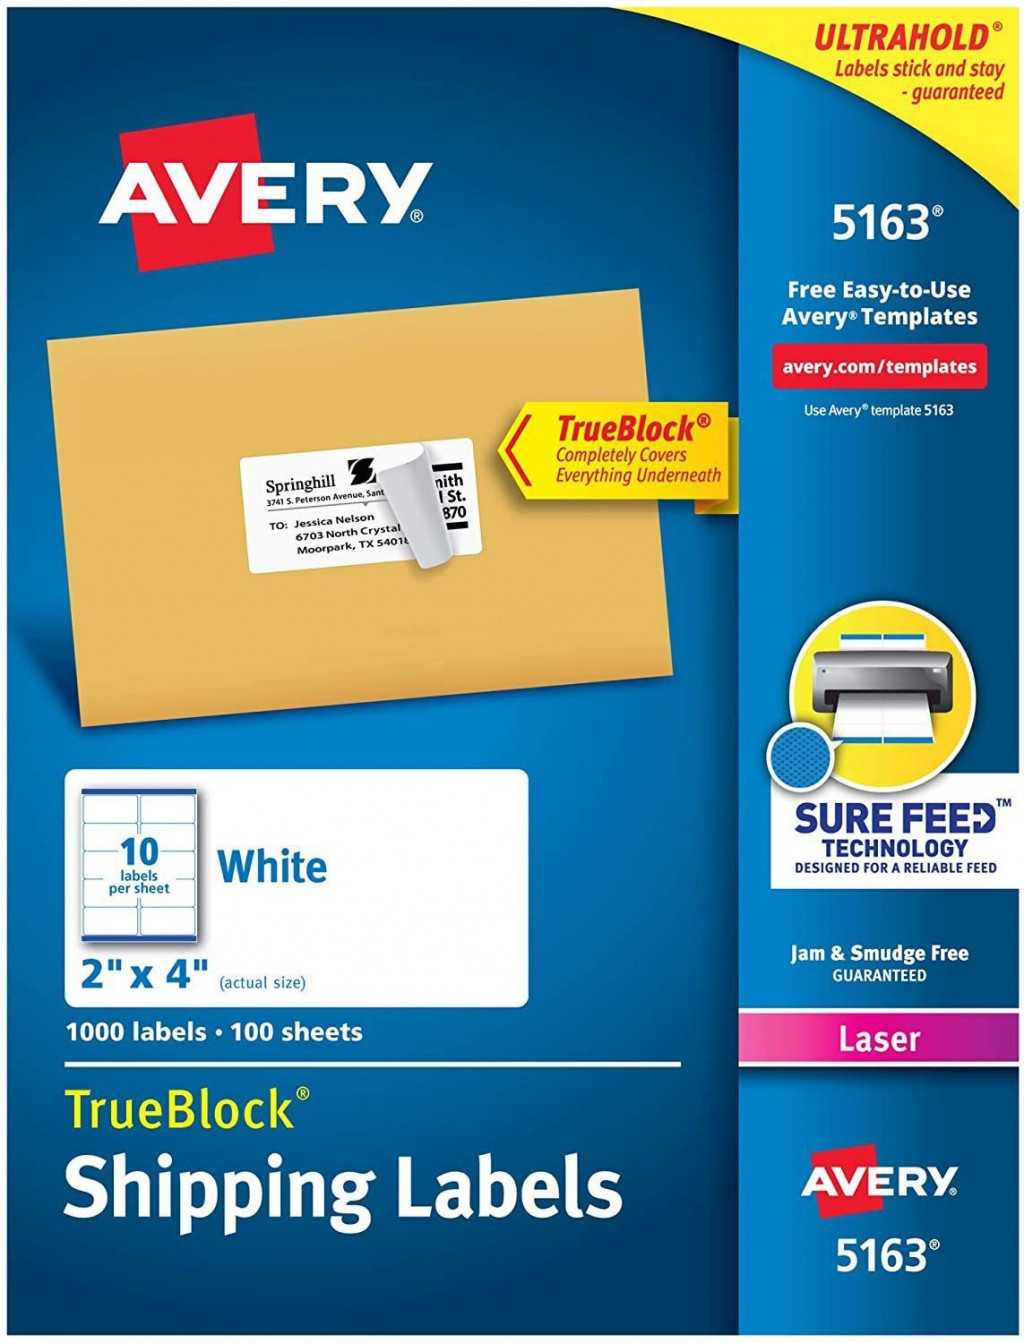 001 Top Free Avery Mailing Label Template Image  Templates Addres For Mac 8160 5163Large